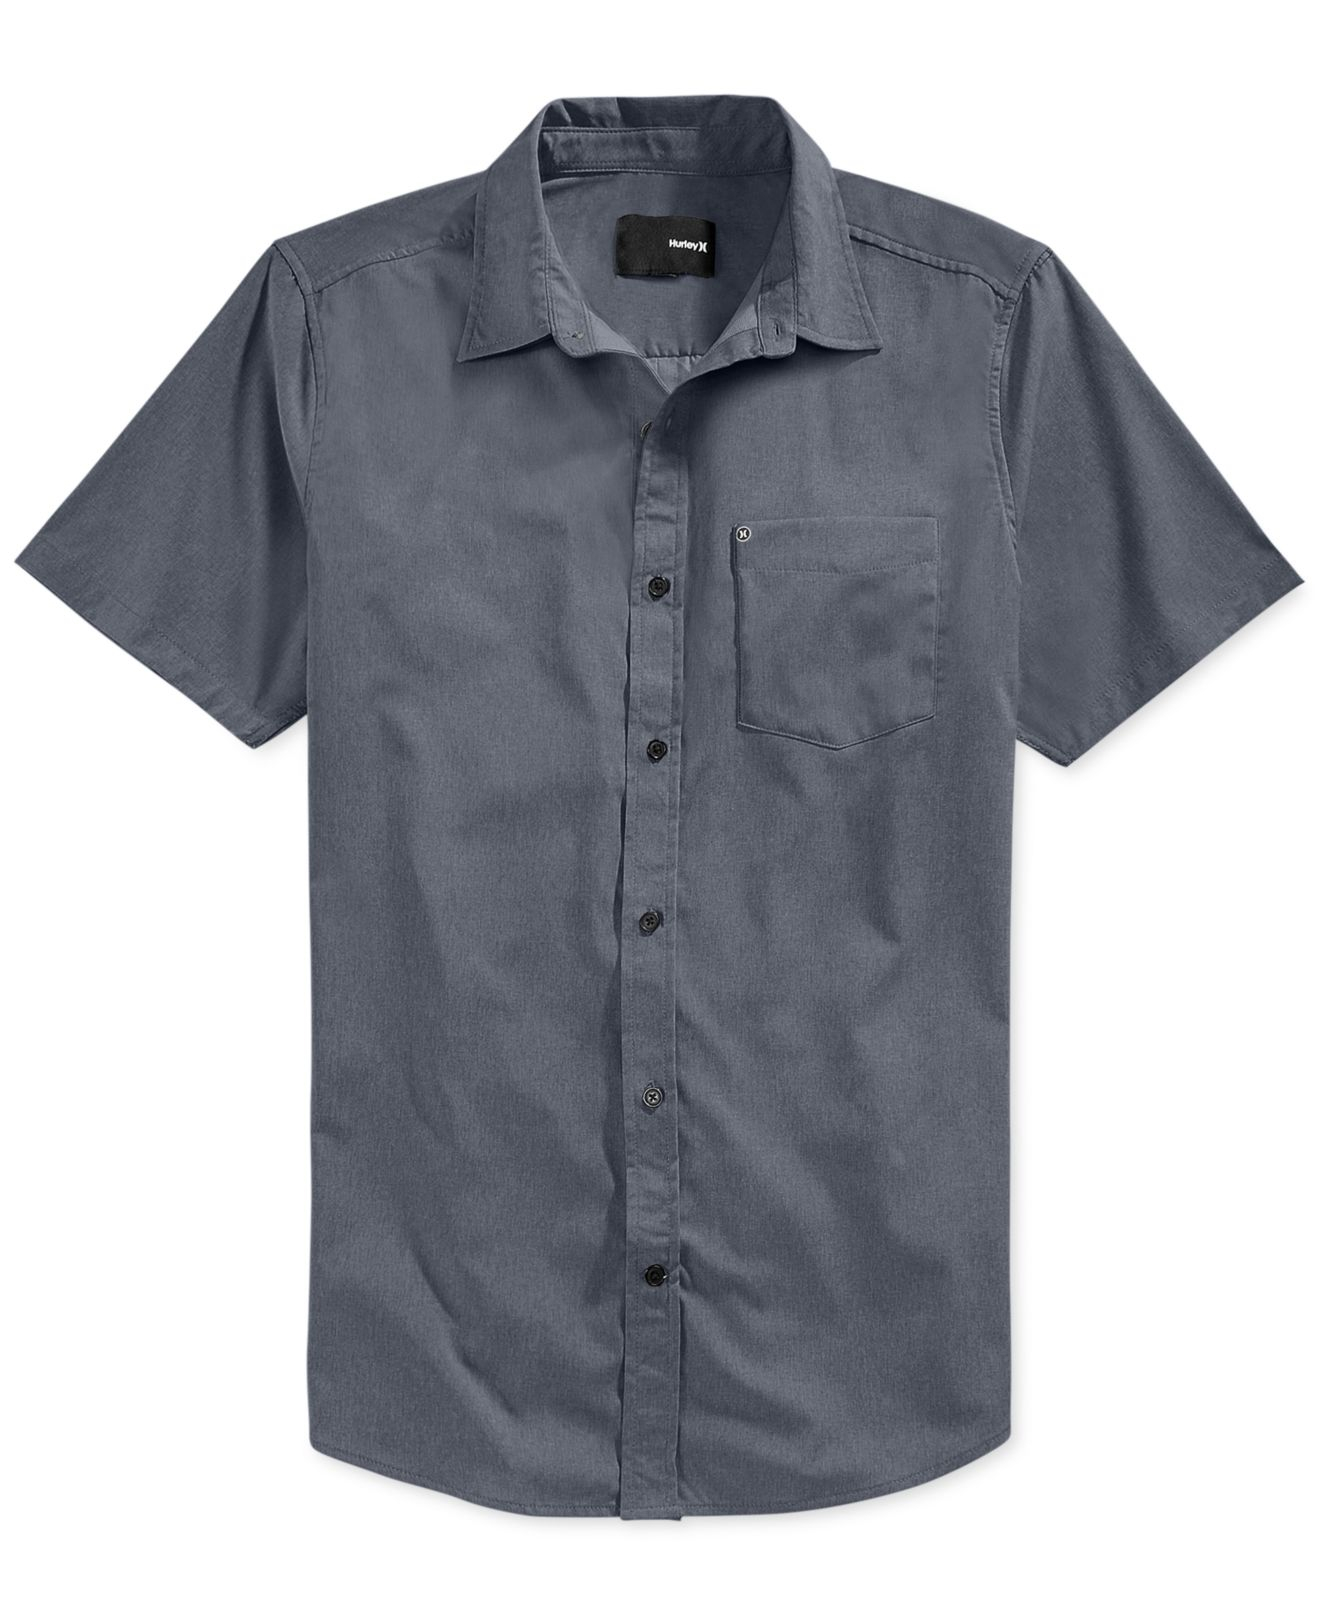 hurley dri fit rogan button up shirt in gray for men lyst